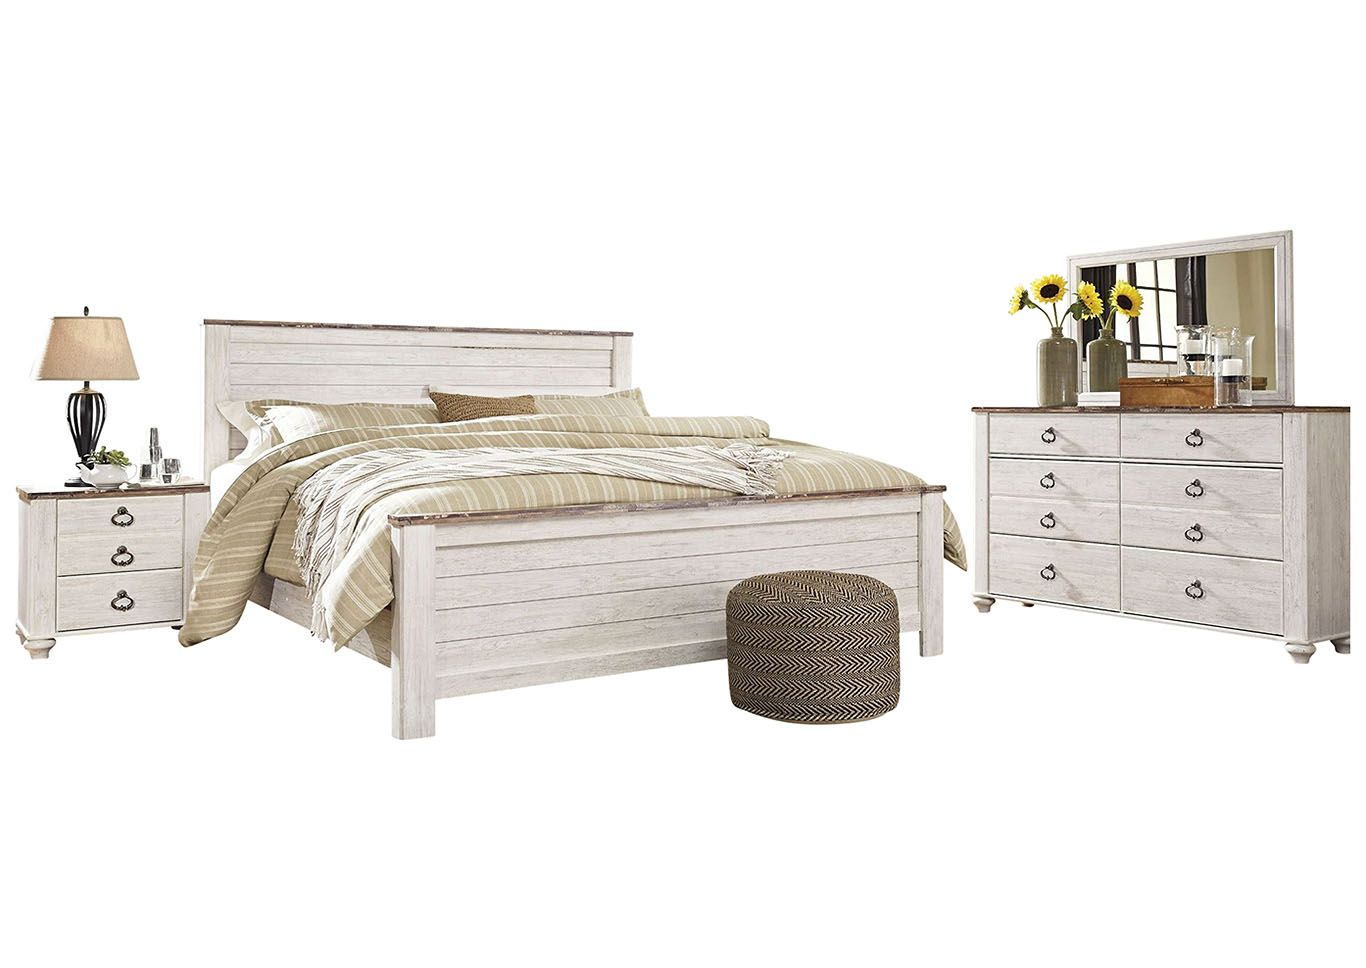 SAVE over 110 and enjoy the Willowton Collection. Queen